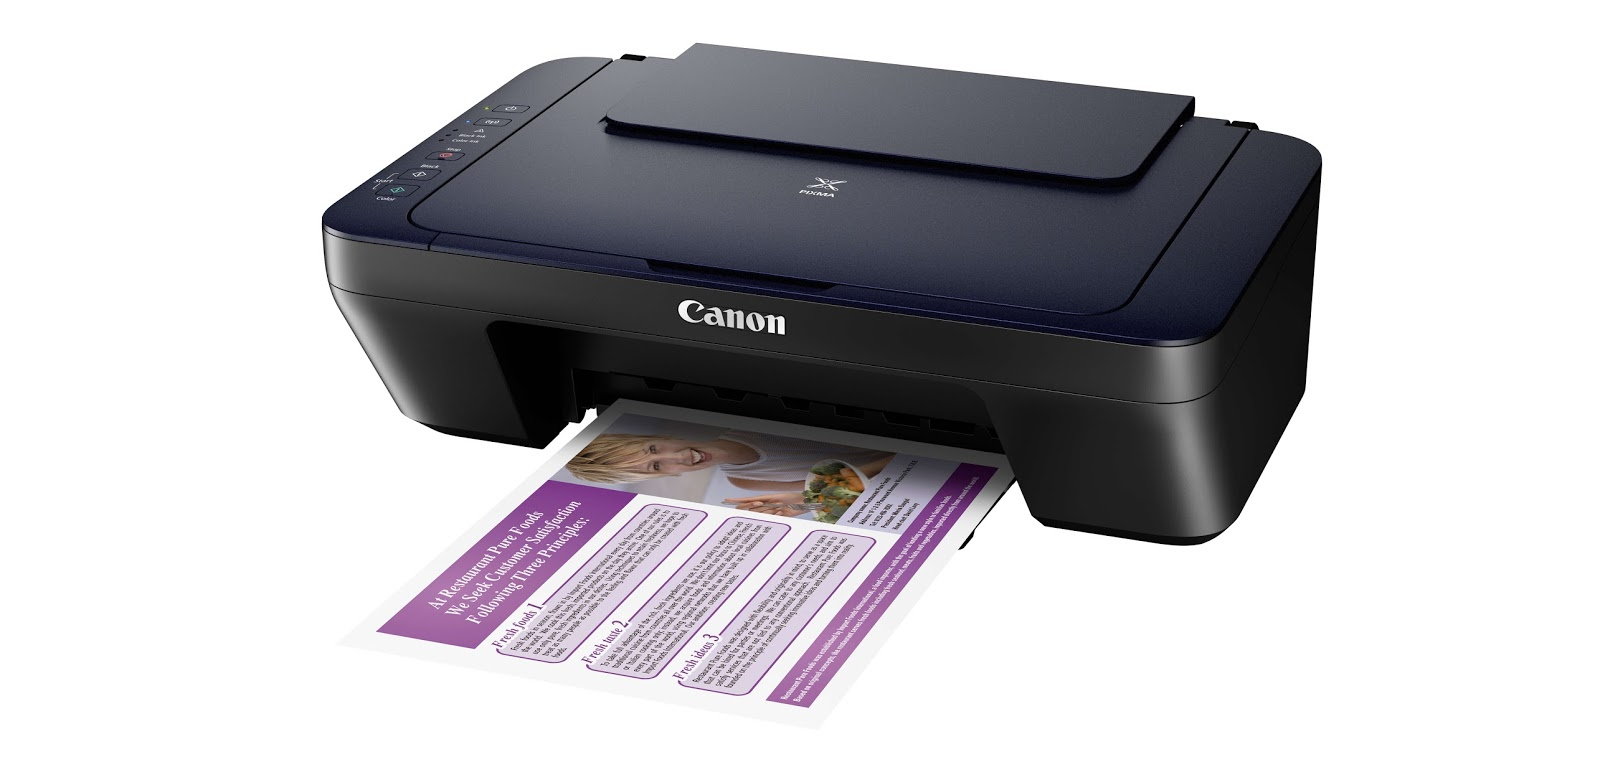 Canon Pixma Ink Efficent E460